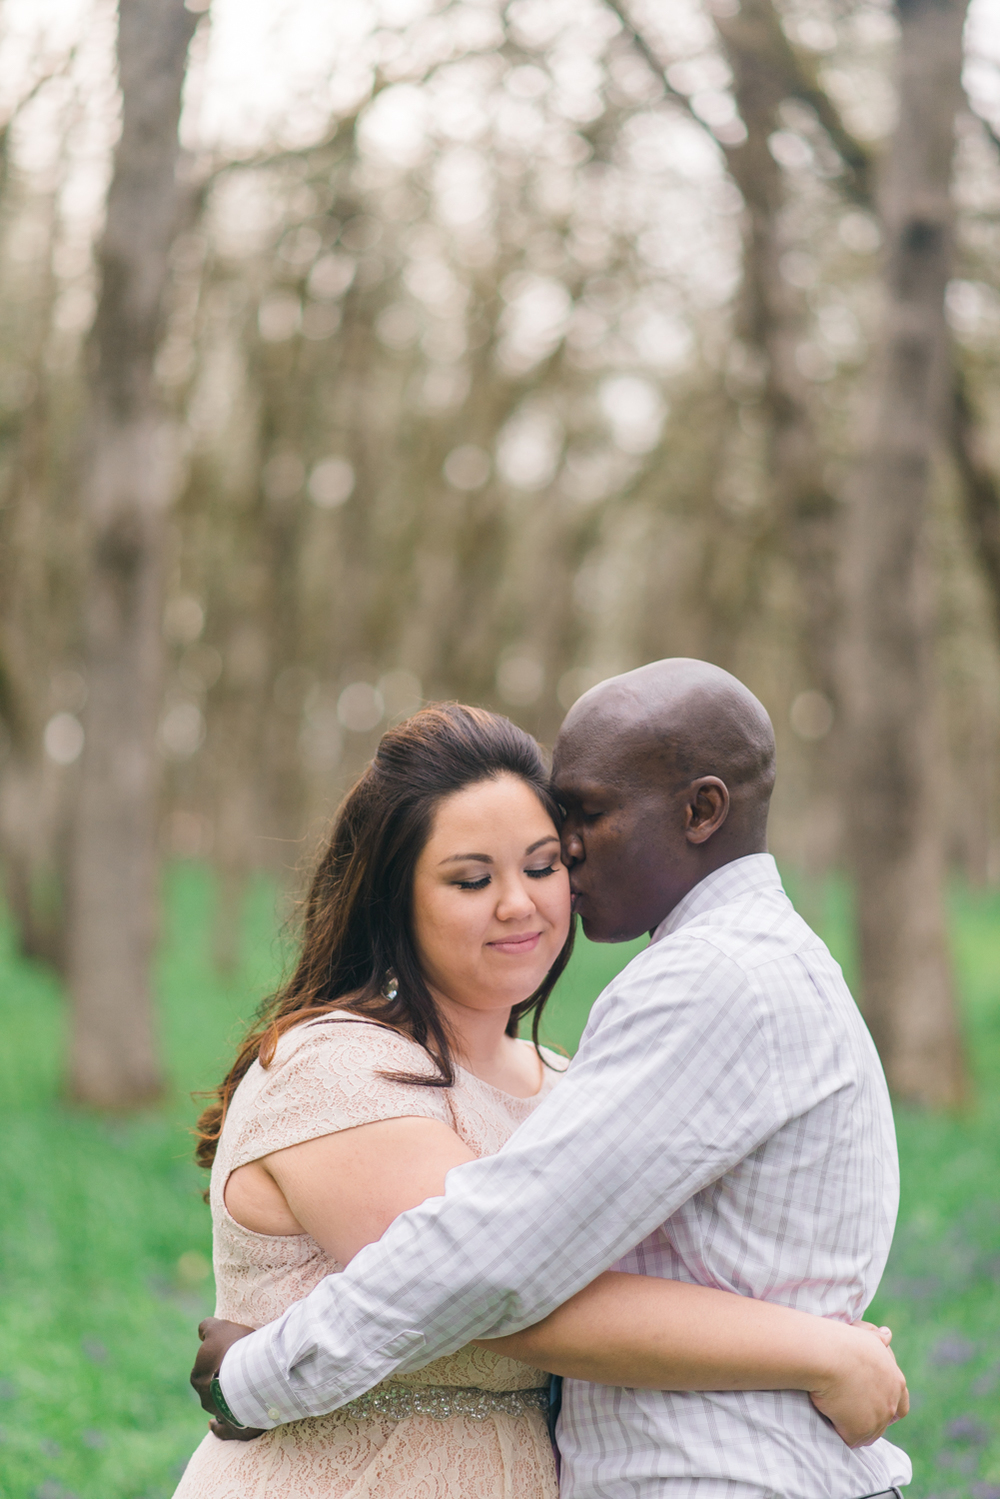 romantic-salem-engagement-photos-bush-park-shelley-marie-photo-26